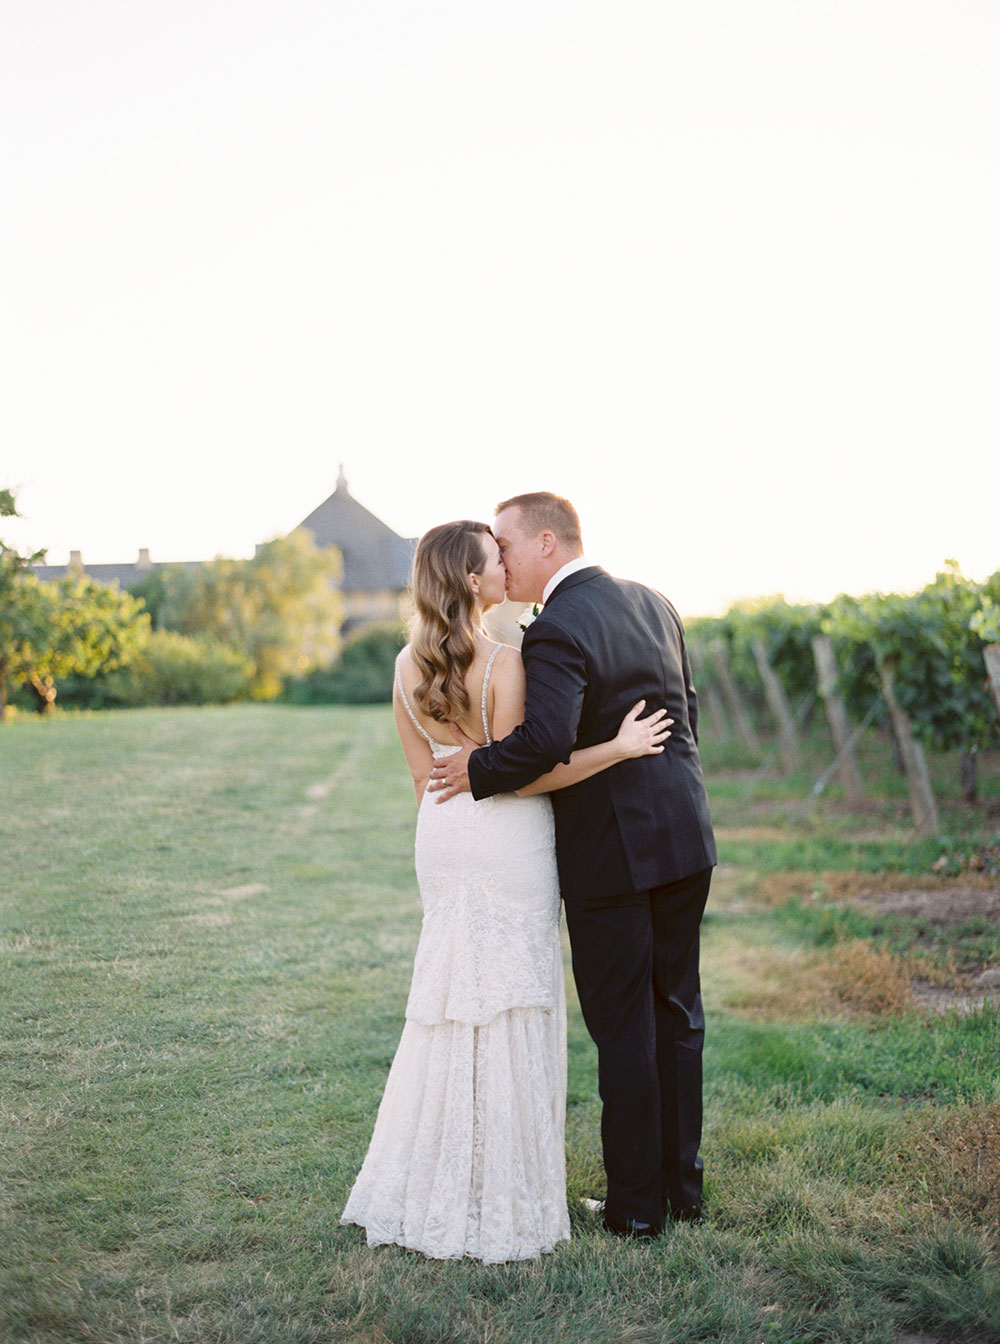 kurtz-orchards-wedding-gracewood-estate-niagara-on-the-lake-photo-by-katie-nicolle-photography-0098.JPG